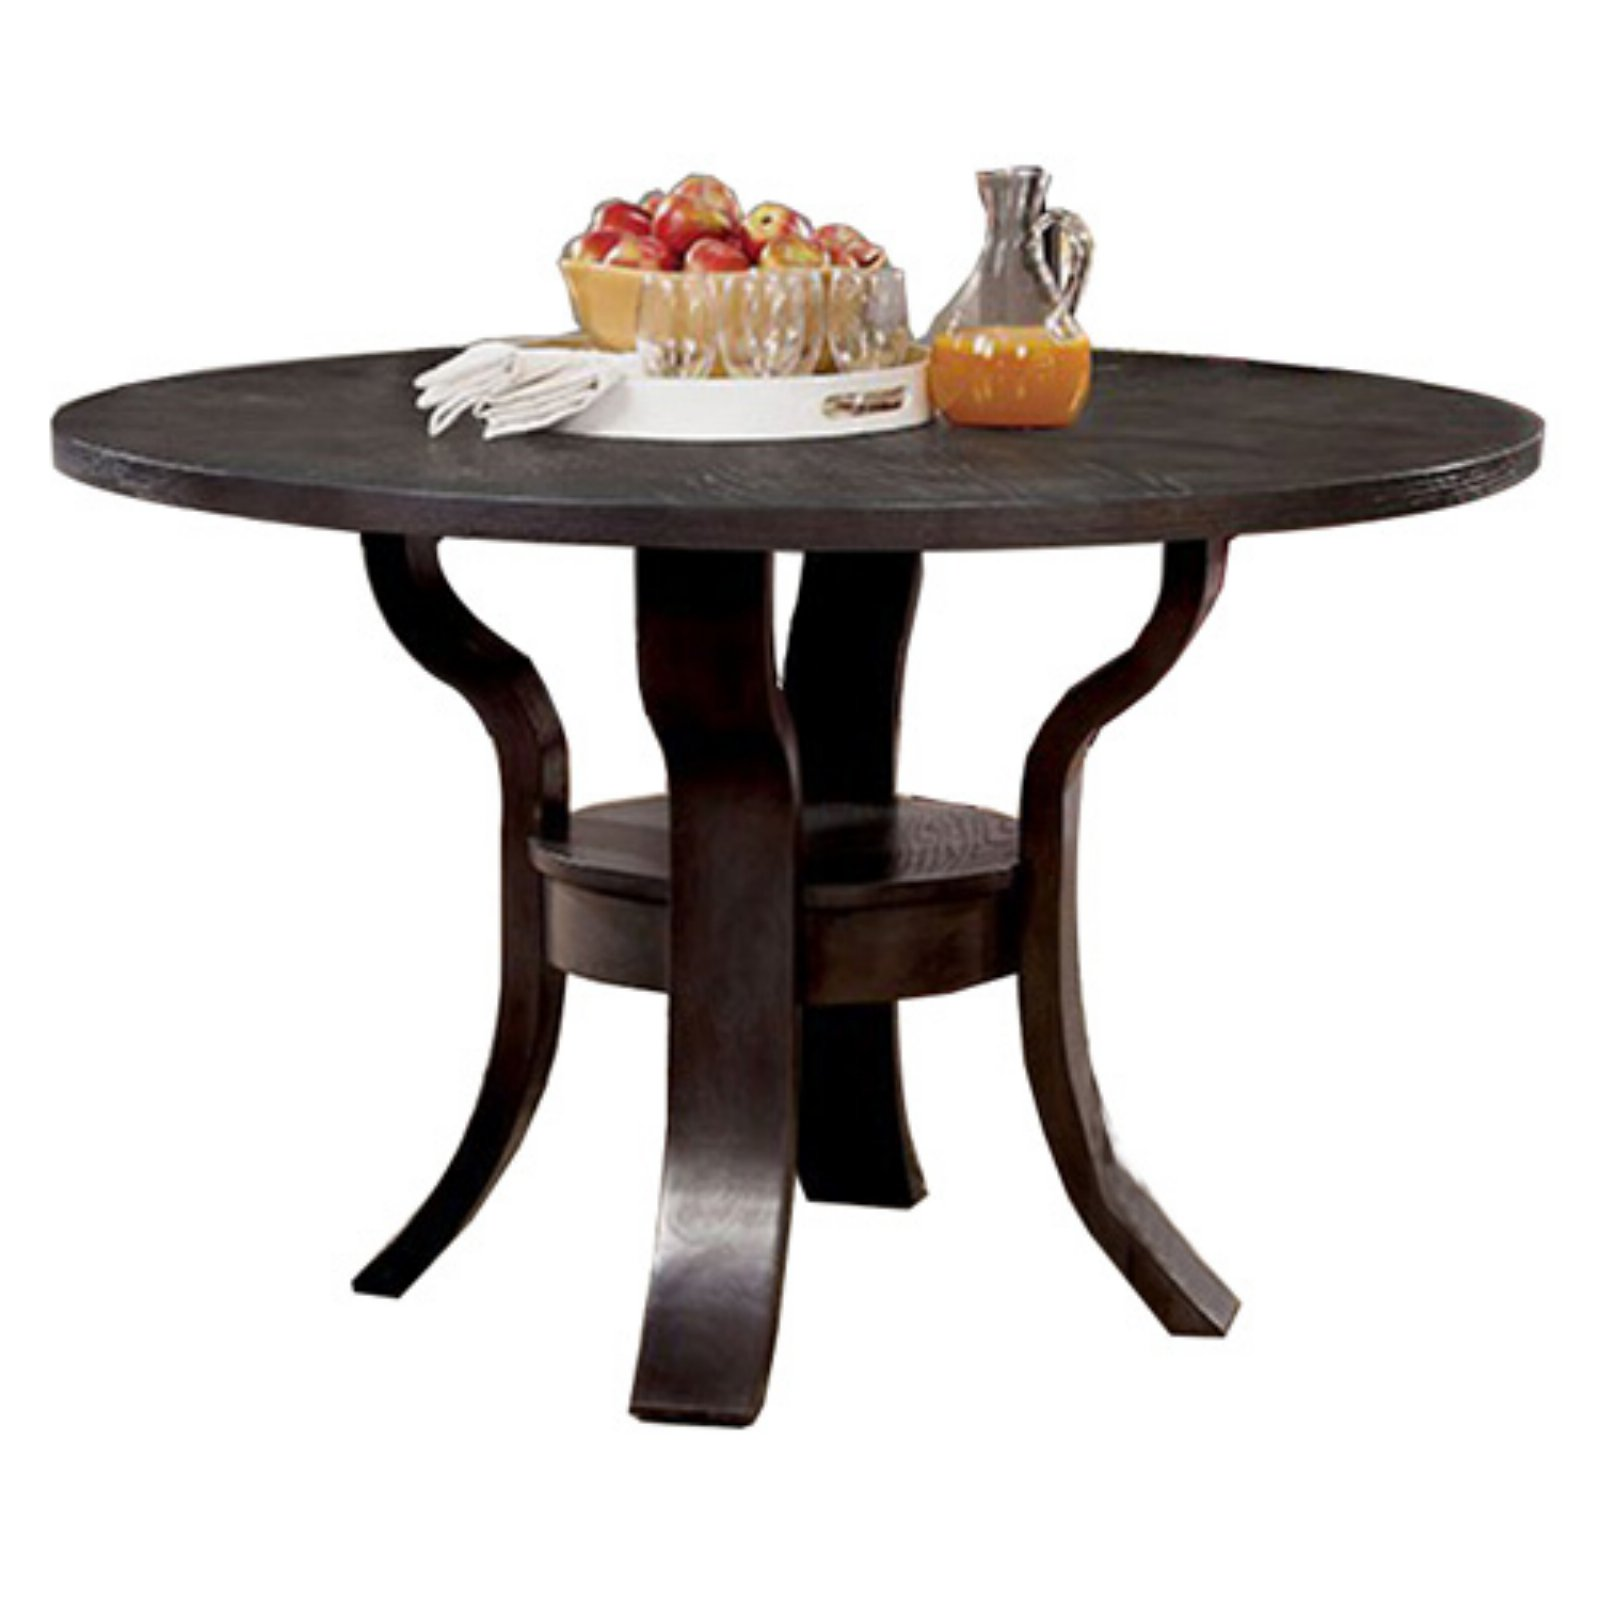 Gisela Transitional Round Dining Table, Brown